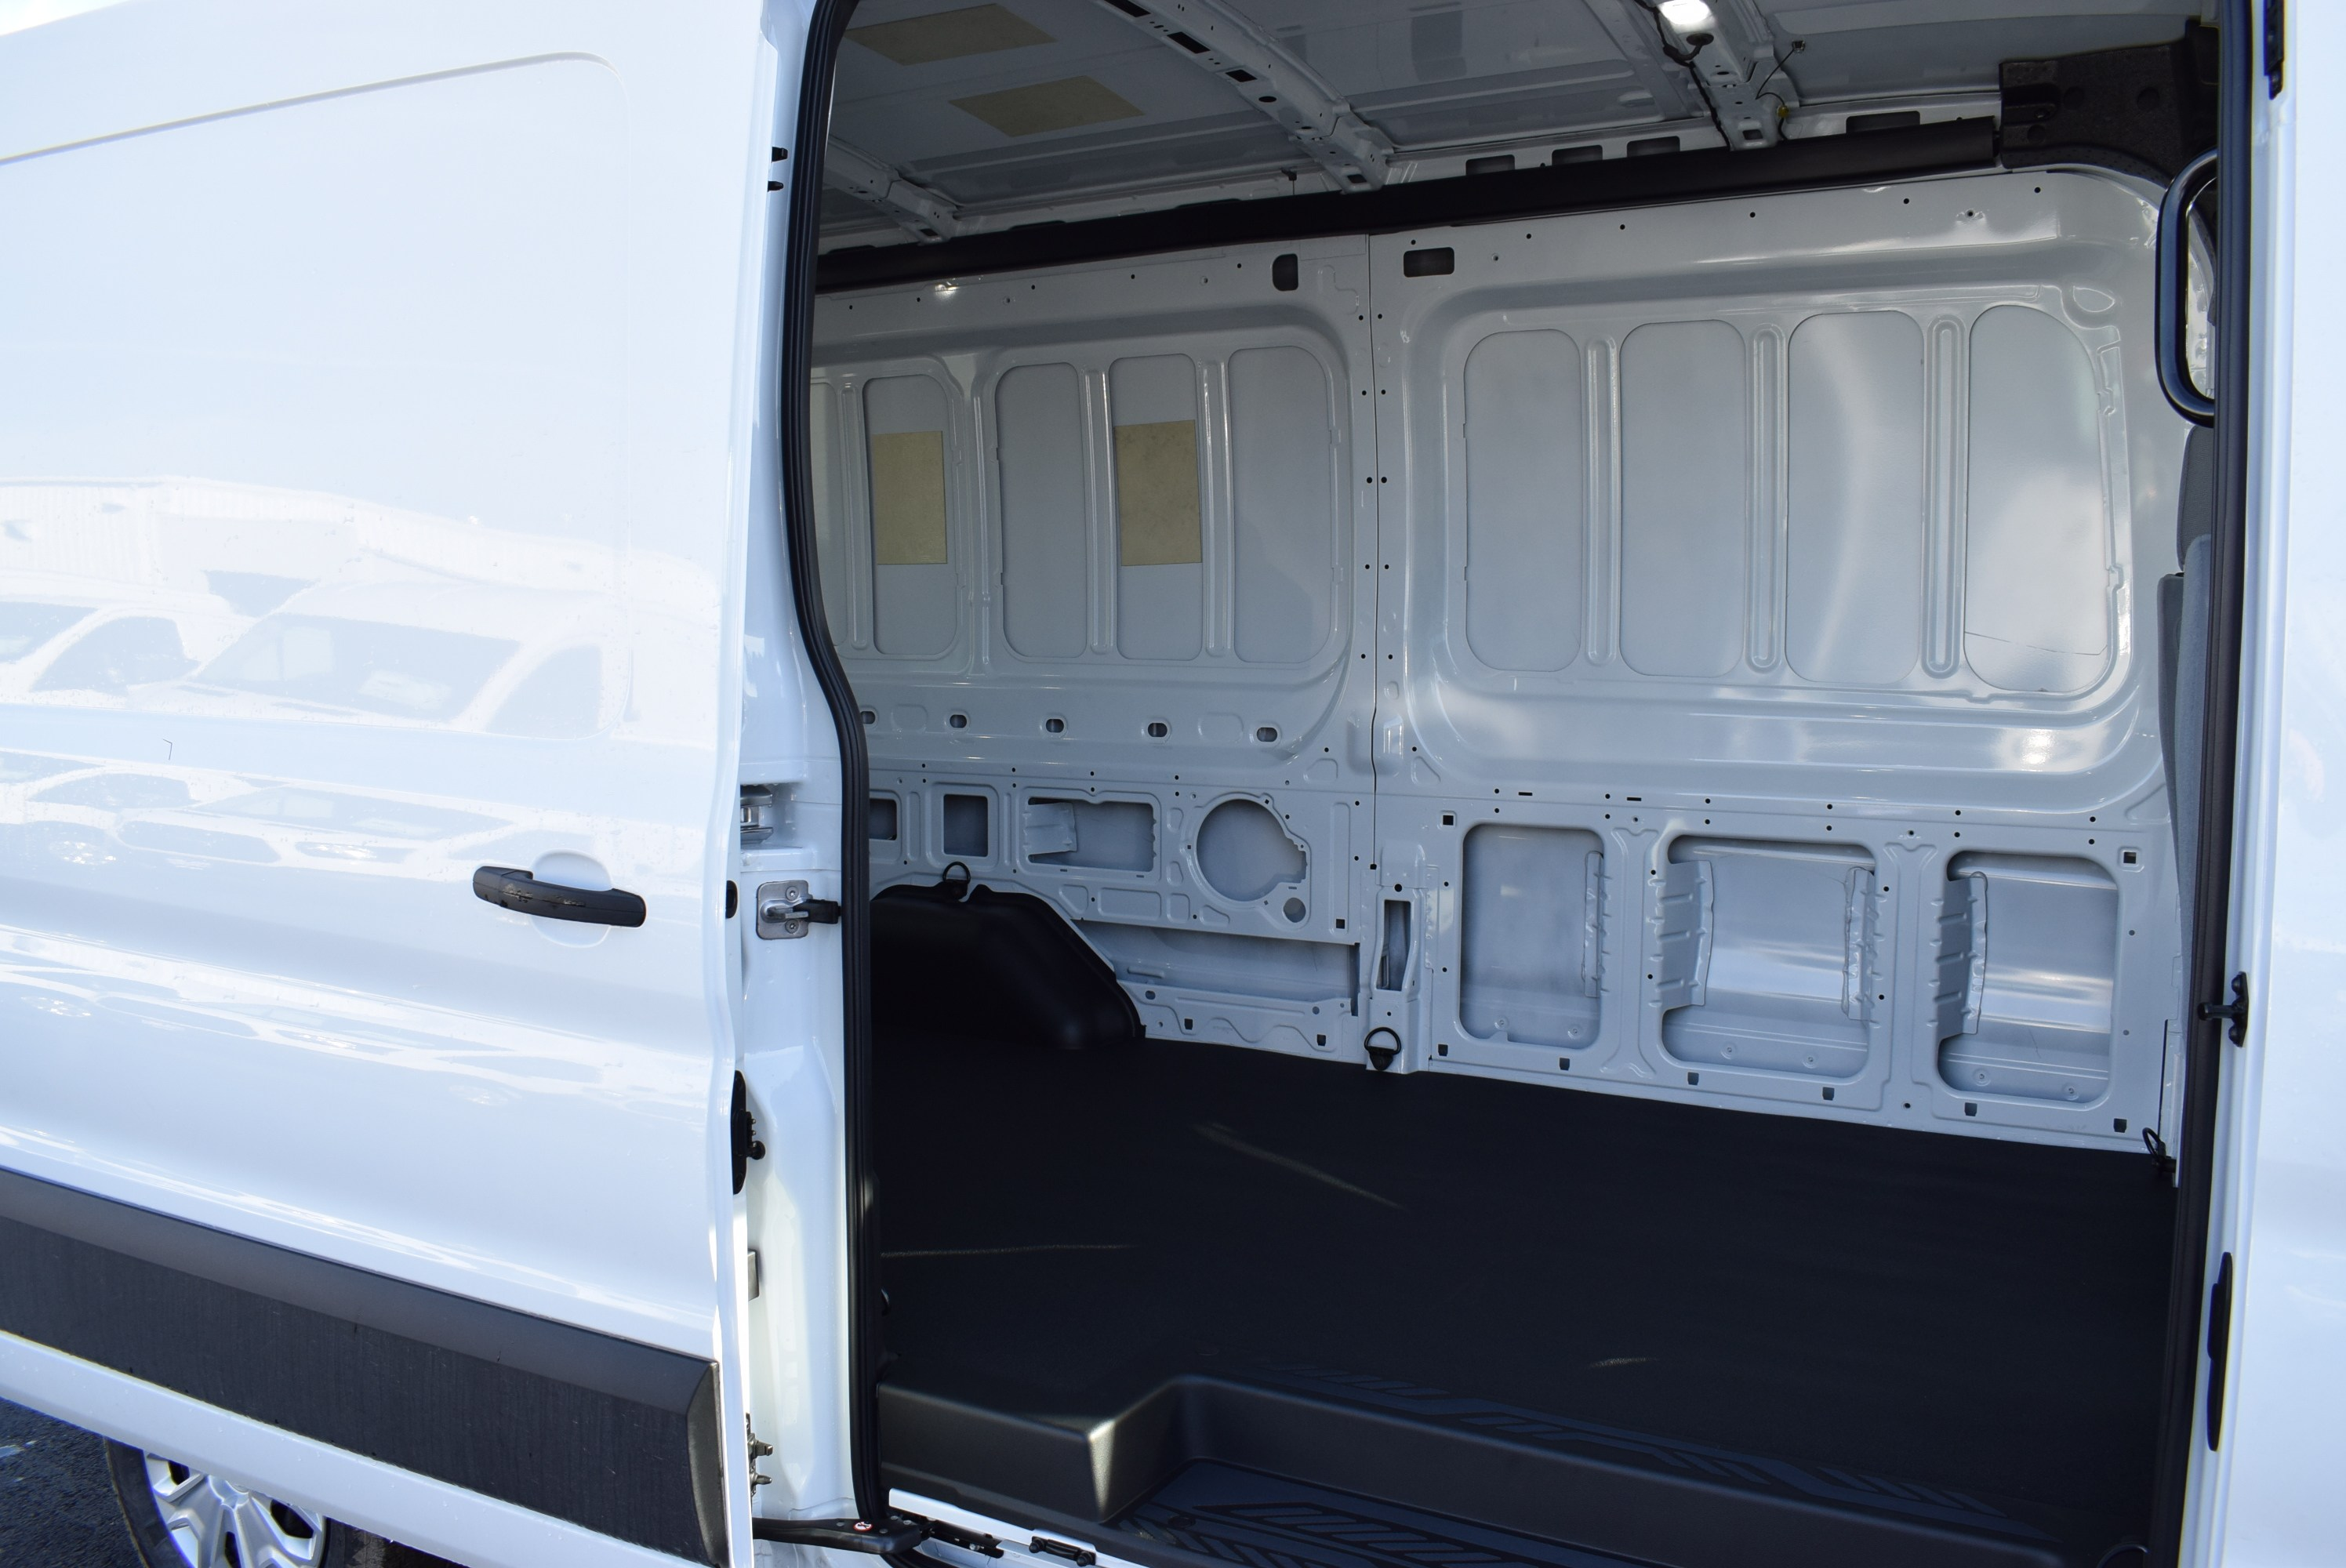 2019 Transit 150 Med Roof 4x2,  Empty Cargo Van #T19173 - photo 12